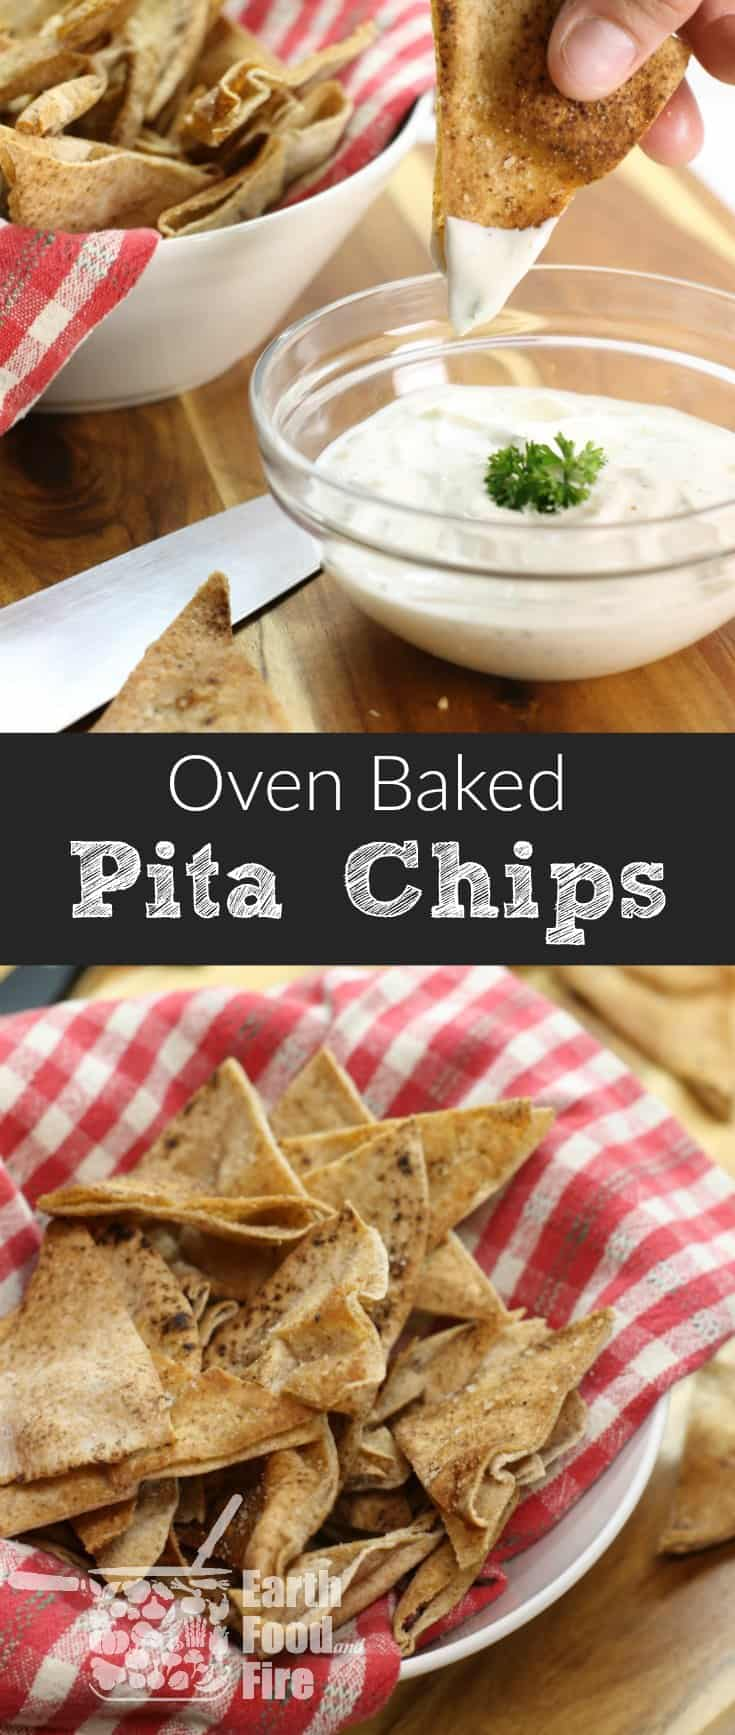 Homemade pita chips are an easy and healthy snack great for after school or simply when a chip craving hits. Serve with hummus or homemade salsa! #pita #chips #baked #snacks